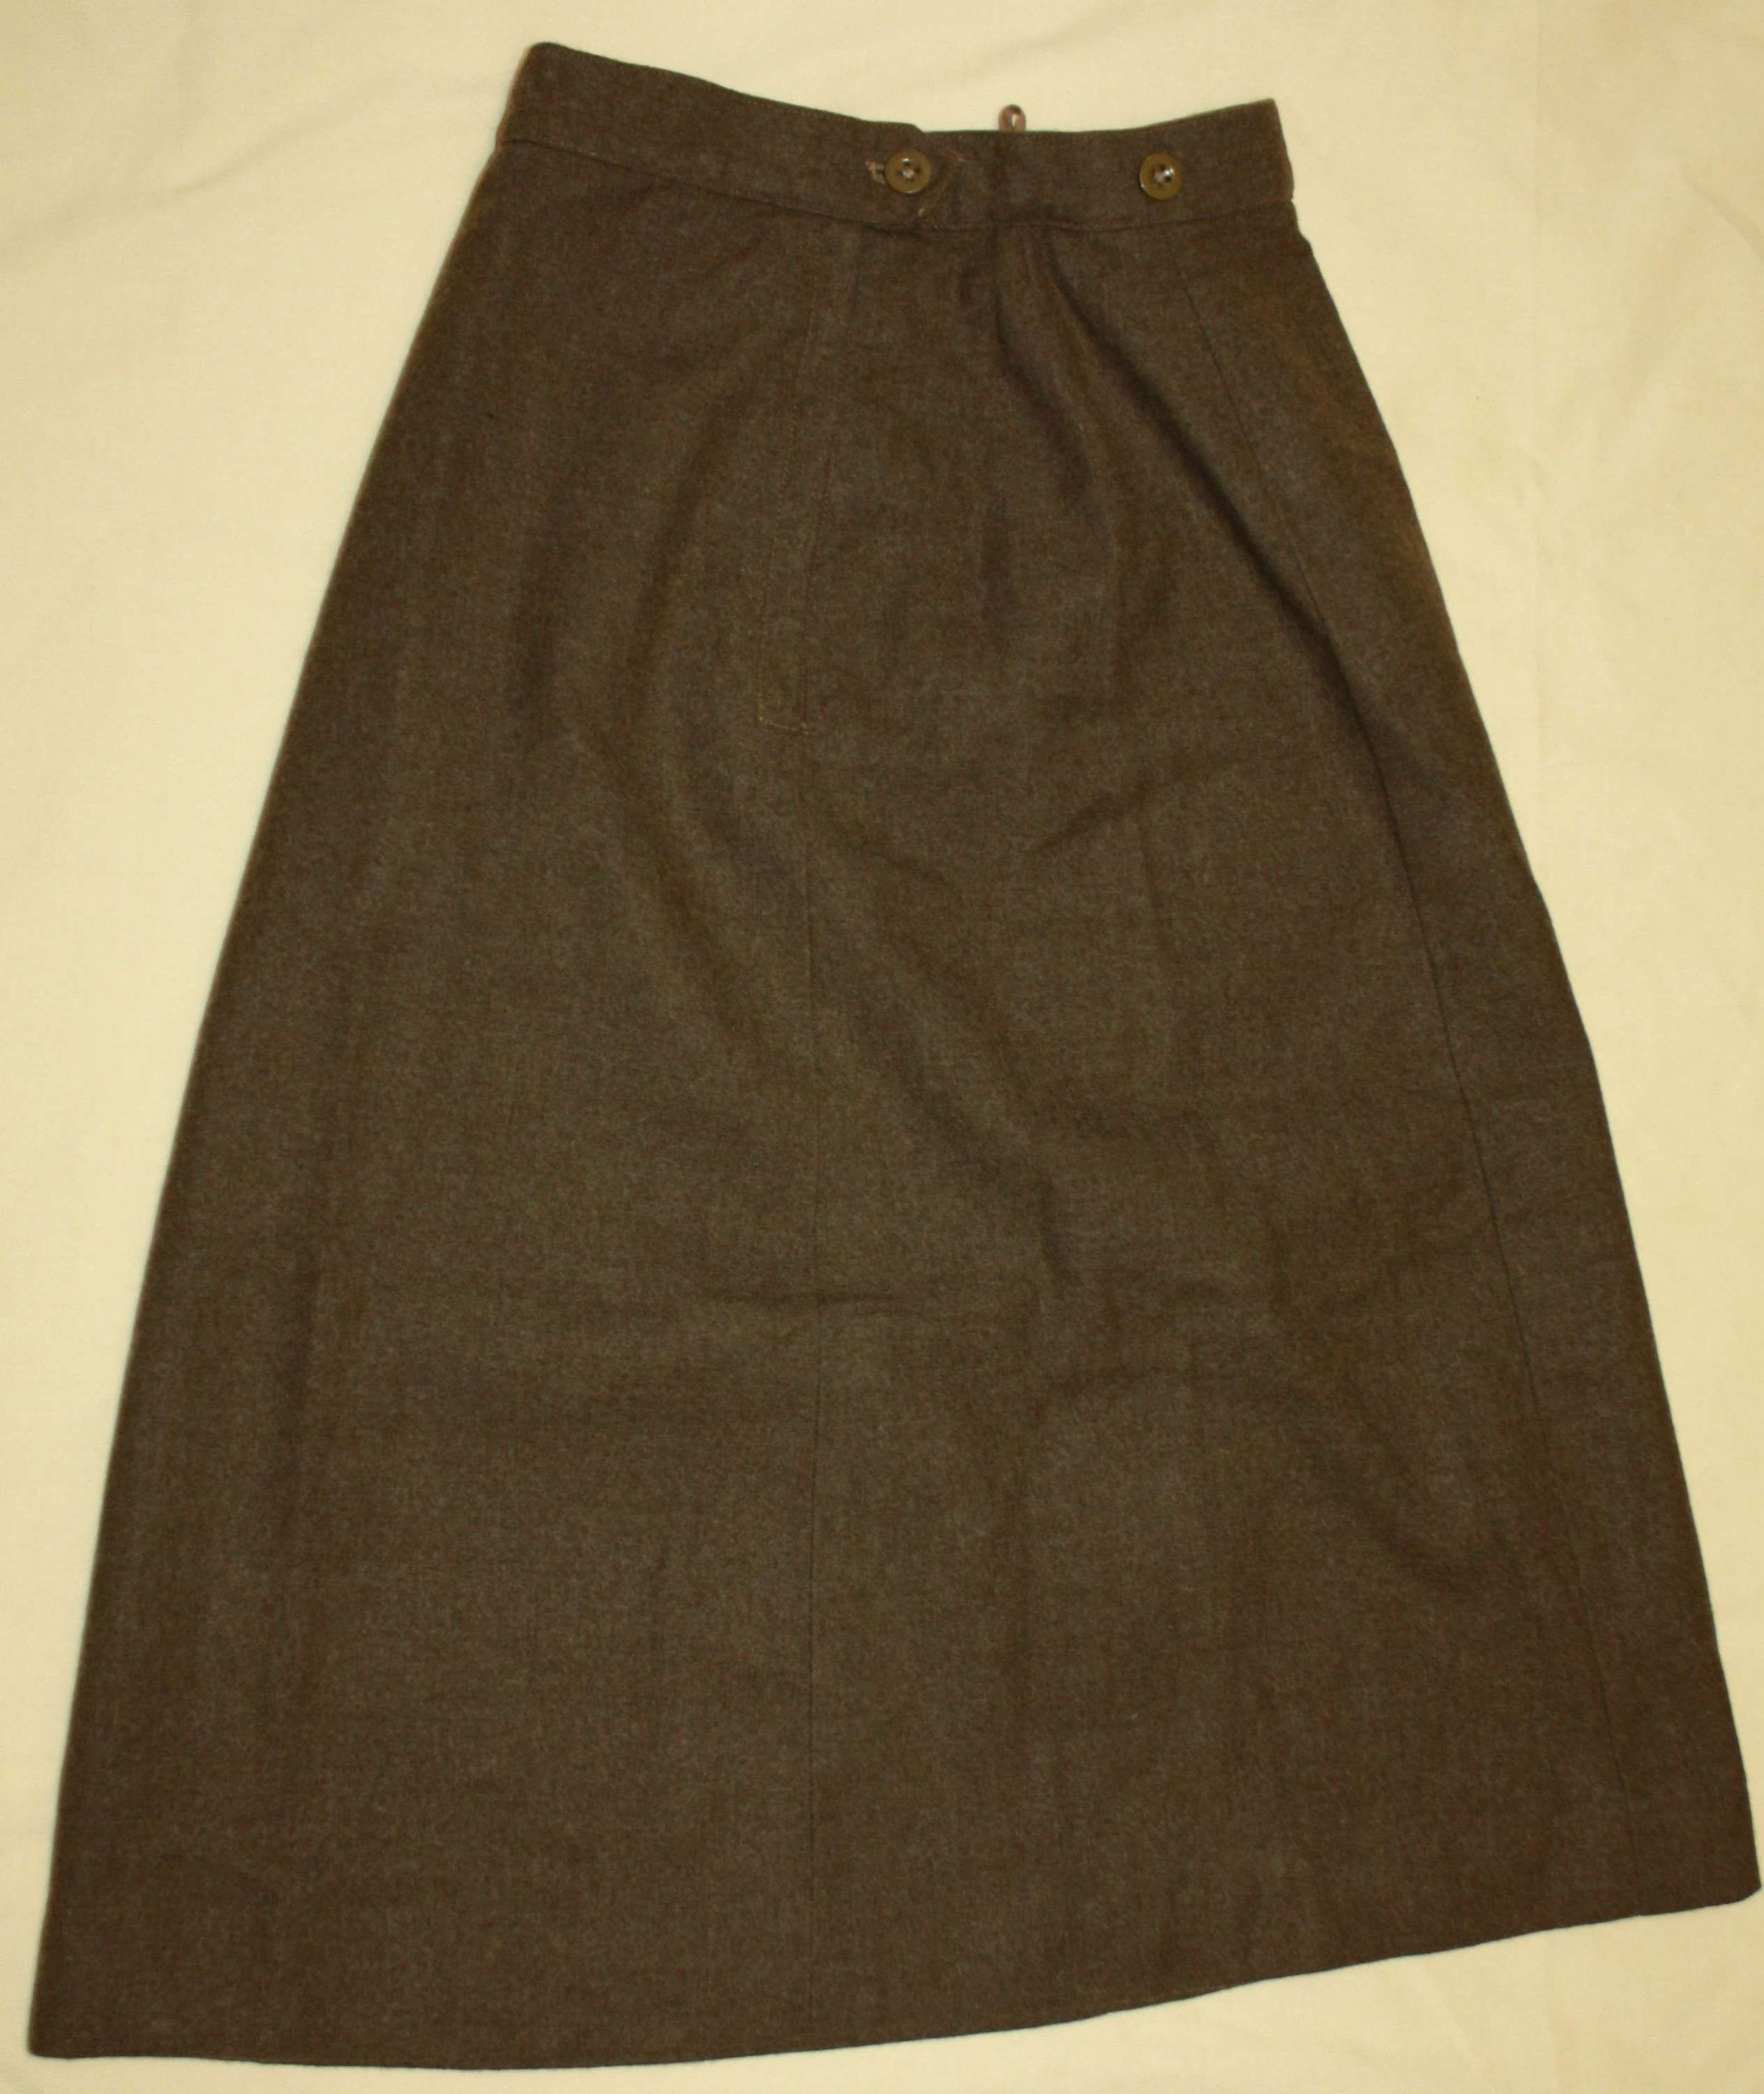 A GOOD 1951 DATED WRAC SKIRT ( SIMULAR TO THE WWII ATS SKIRTS )